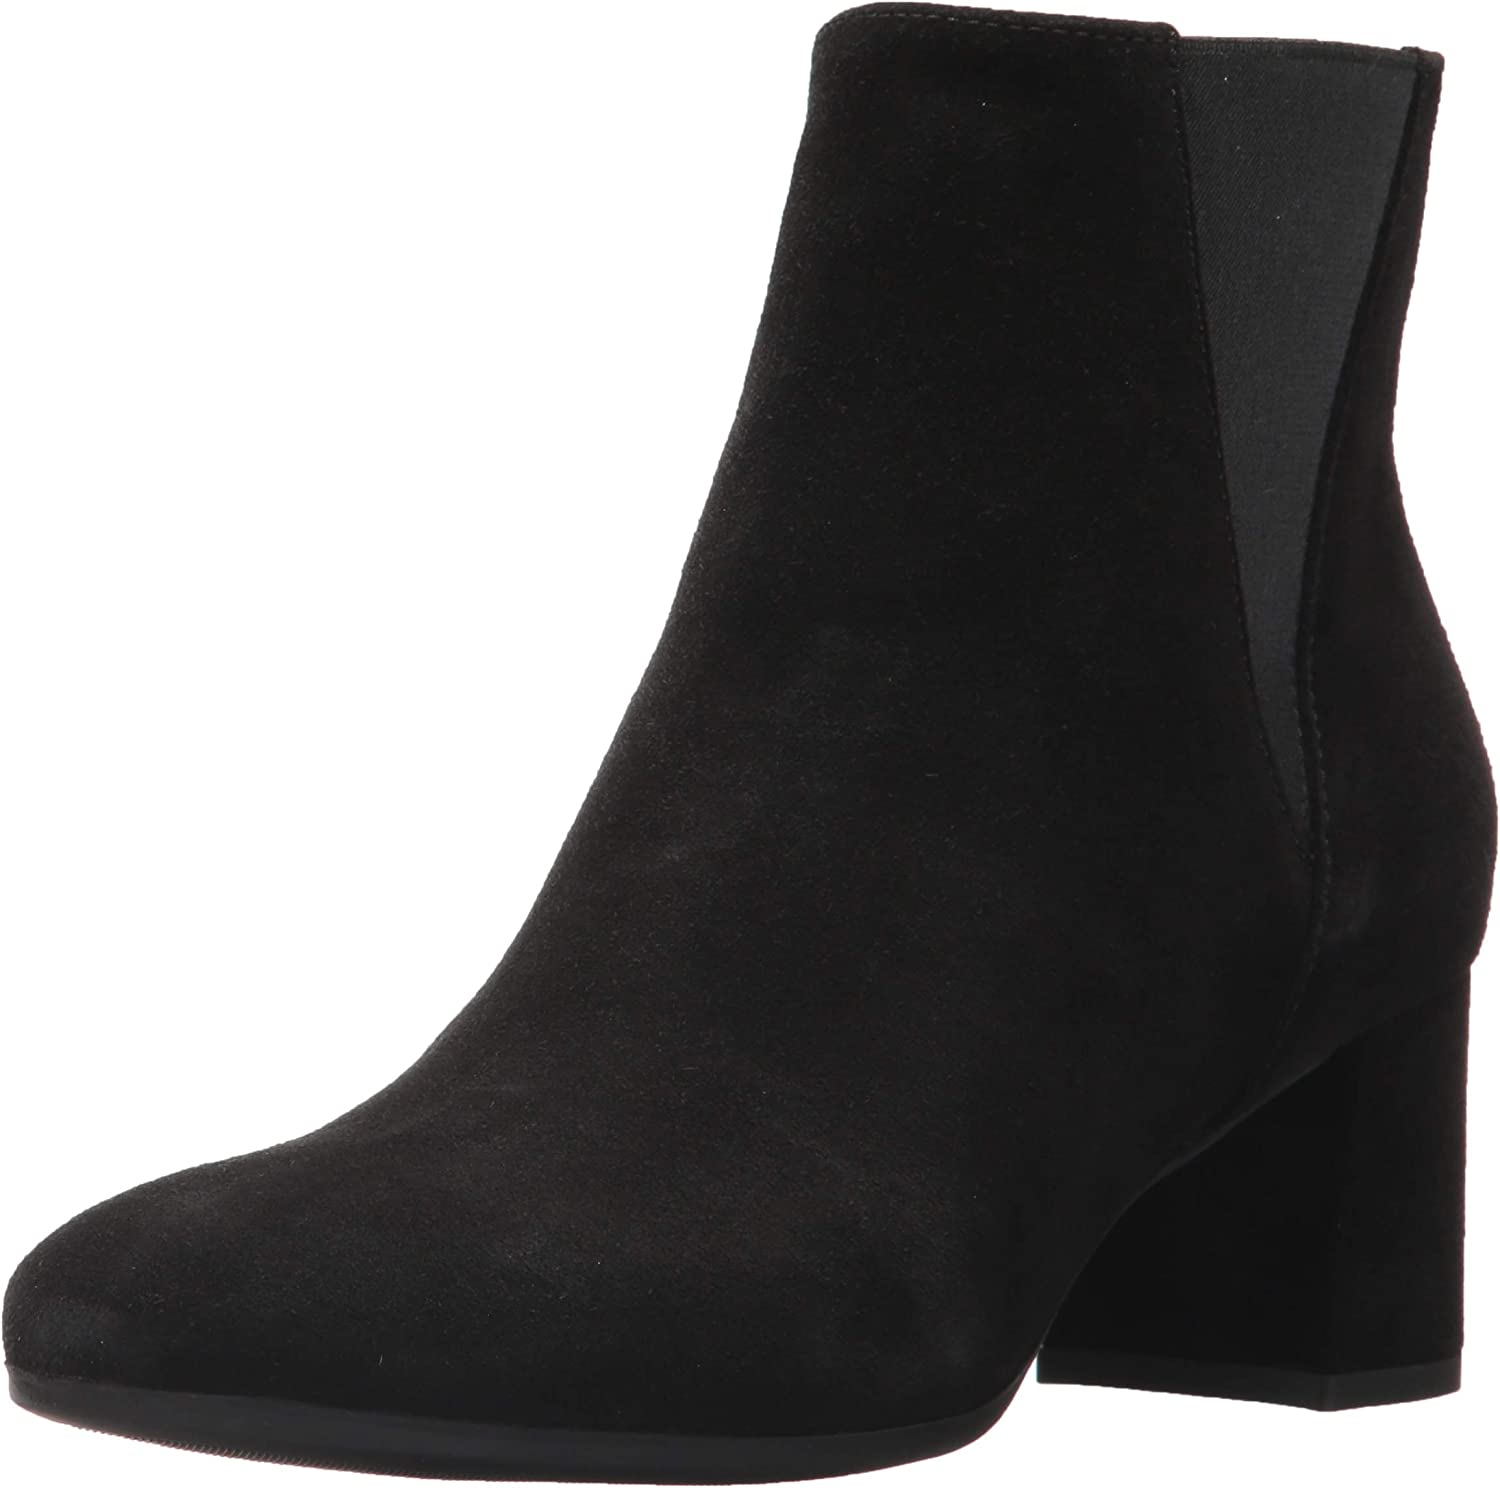 La Canadienne kvinnor januari Ankle Boot Boot Boot  mer rabatt